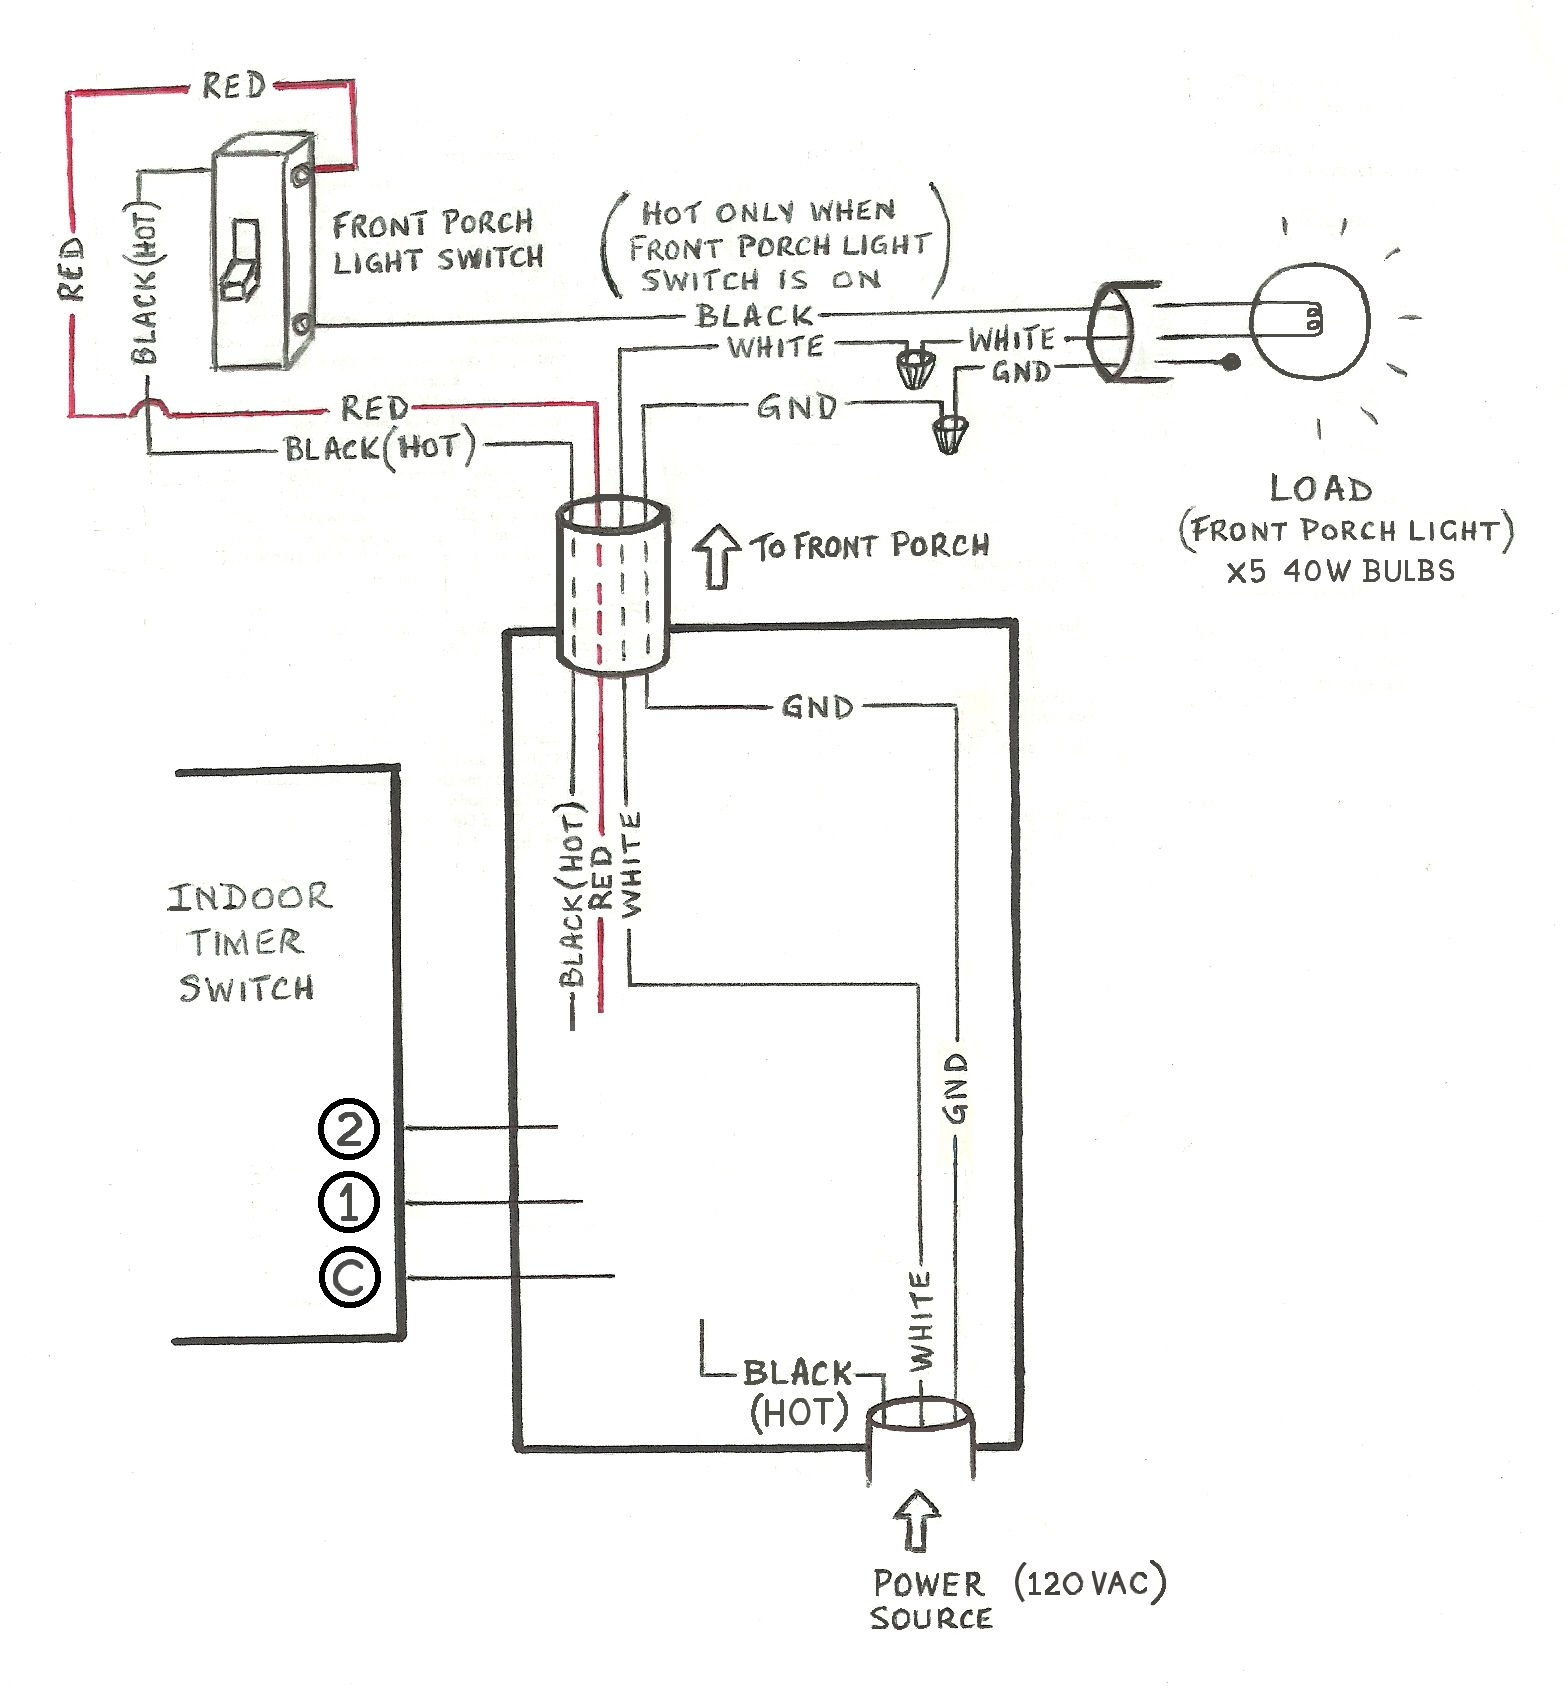 hight resolution of leviton 3 way switch wiring schematic dimmer switch wiring diagram leviton 3 way rotary timer